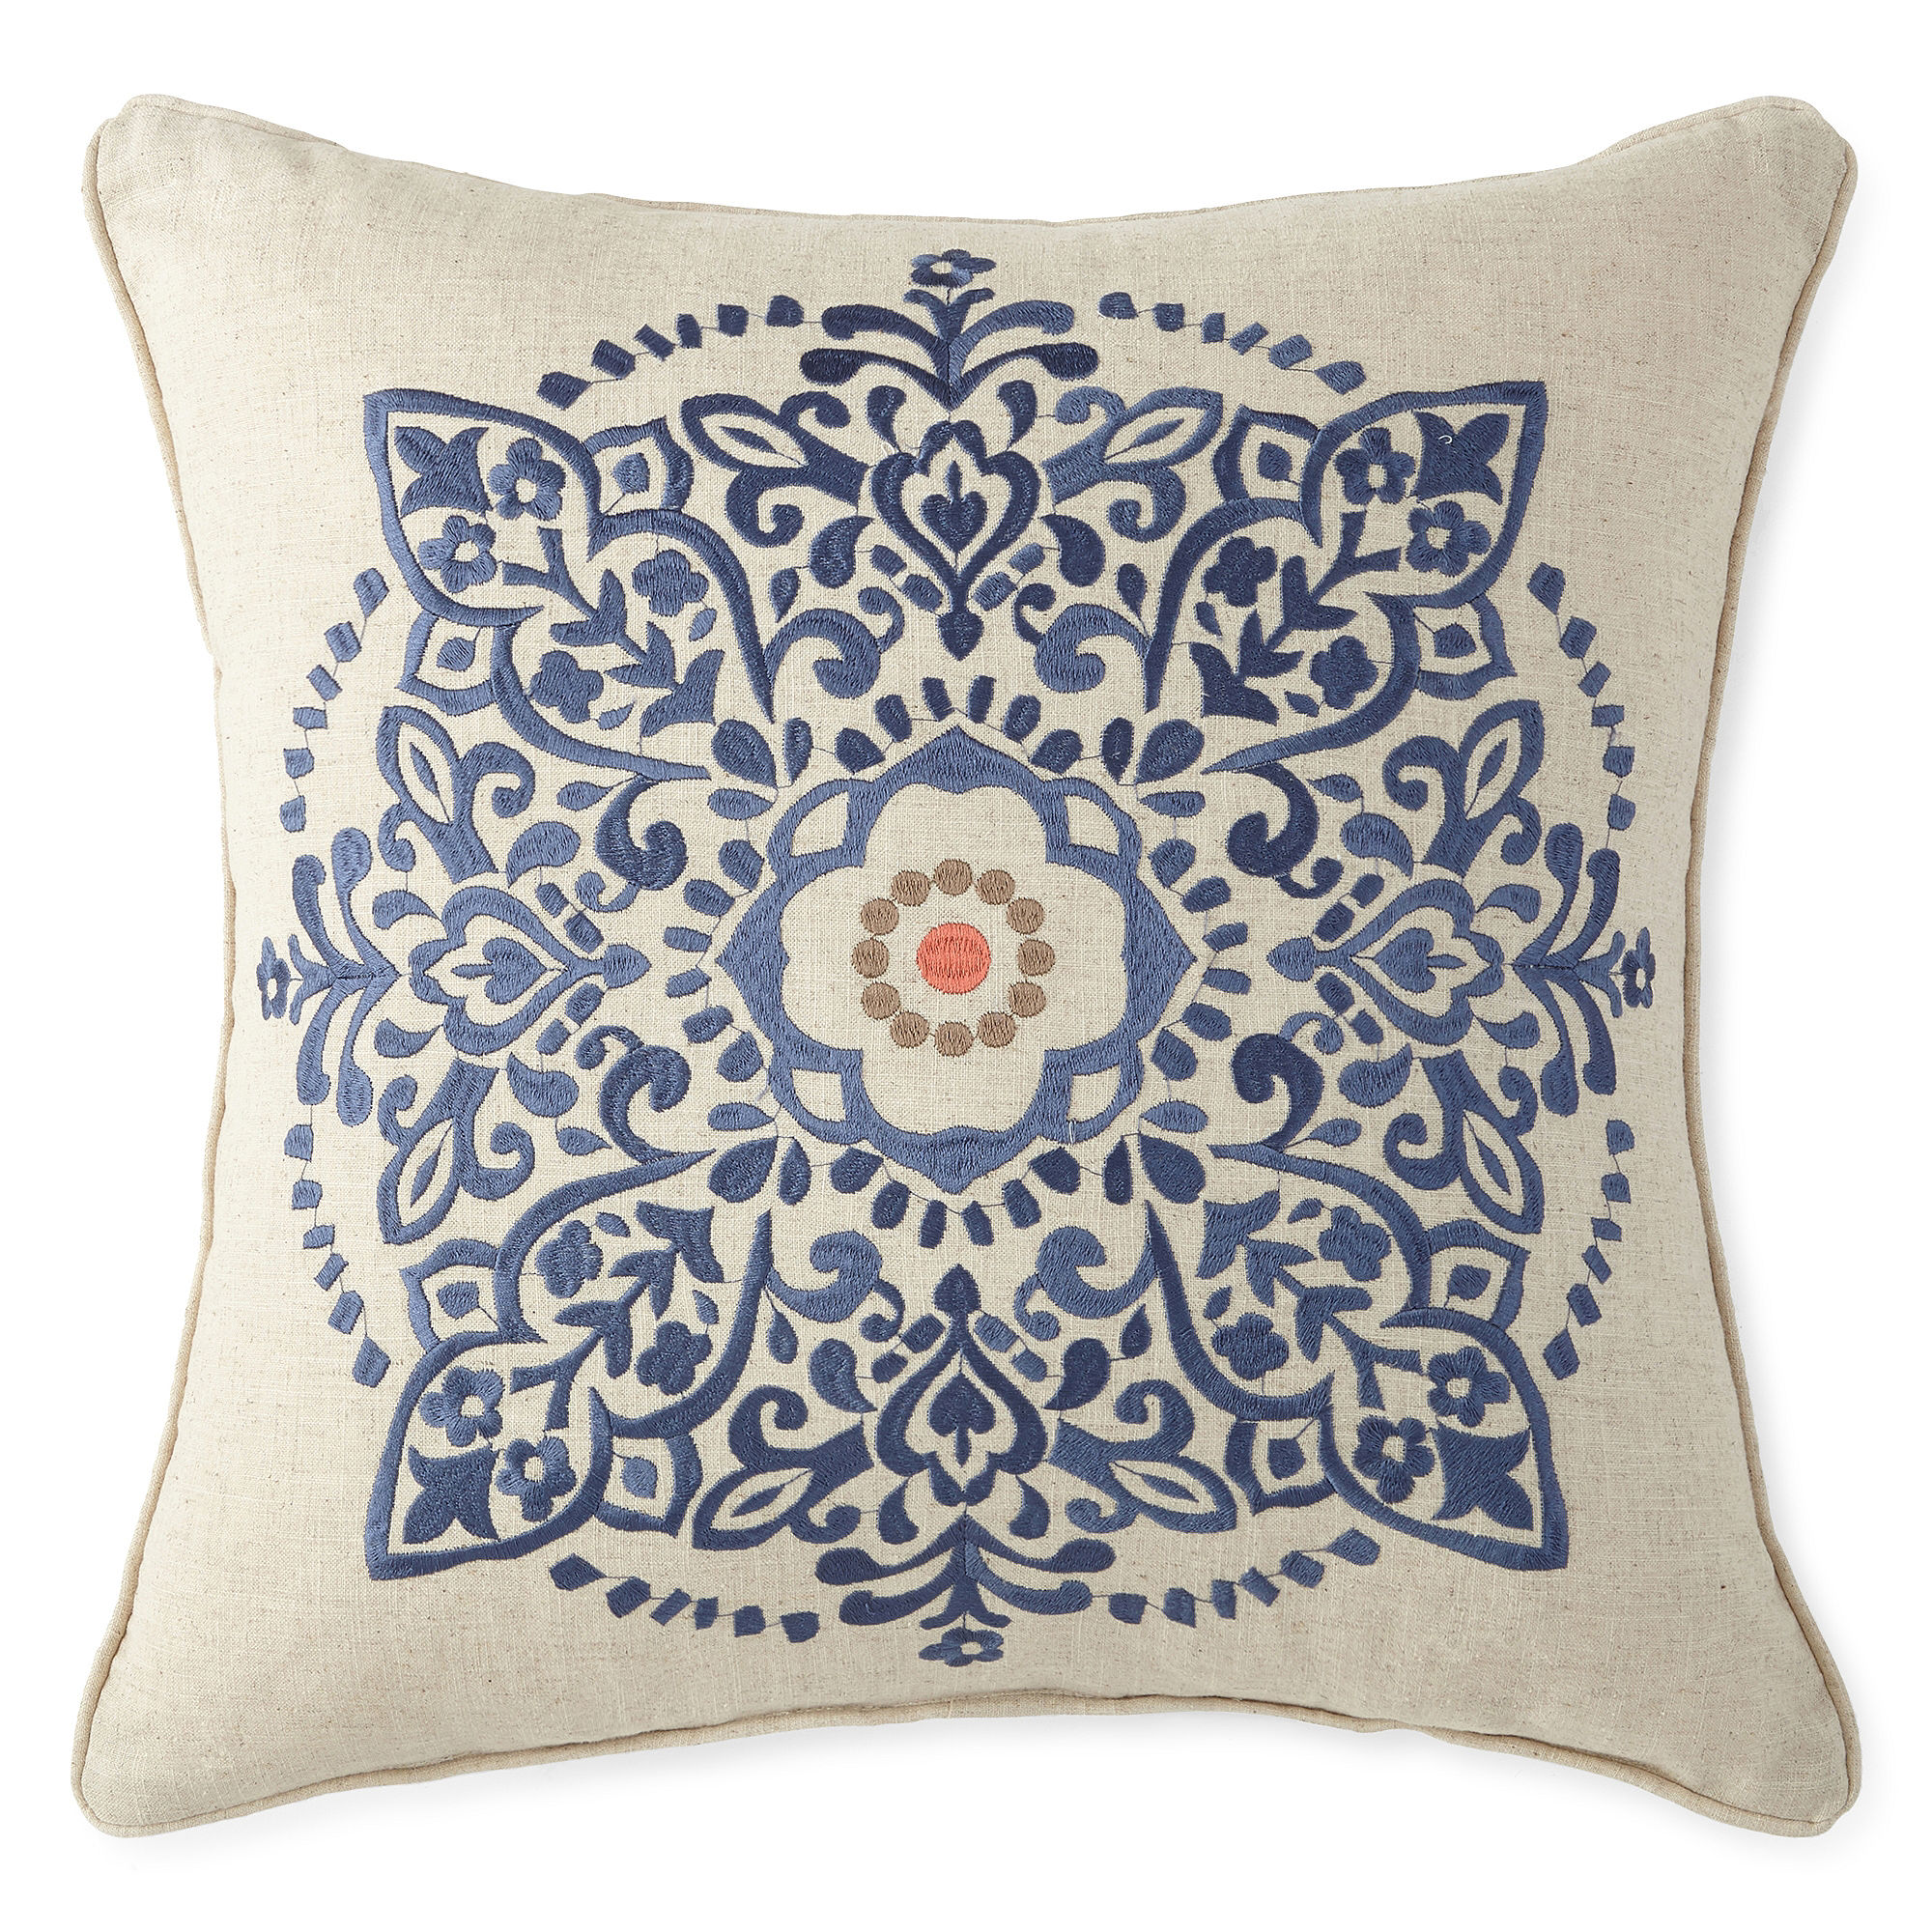 Jcpenney Home Decorative Pillow : JCPenney Home Square Throw Pillow Shop at Ebates